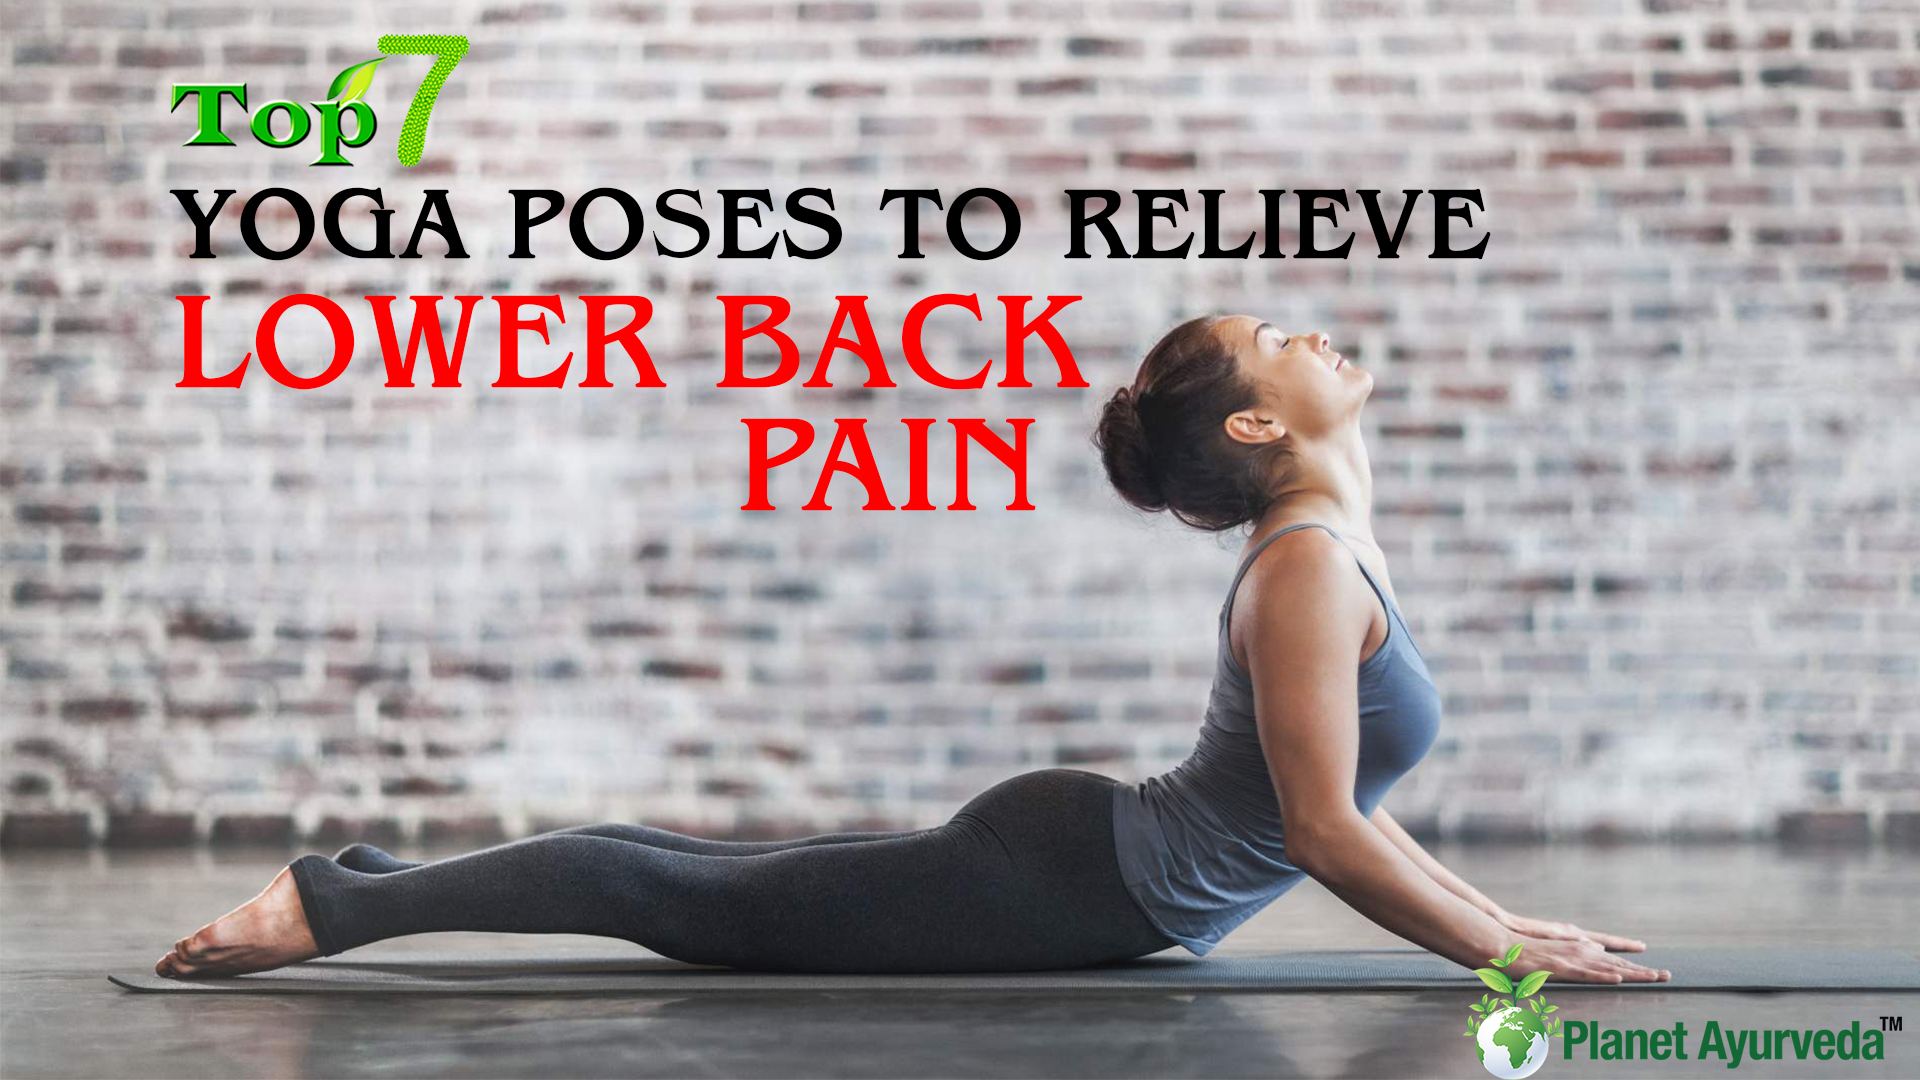 Top 7 Yoga Poses To Relieve Lower Back Pain Simple Exercise